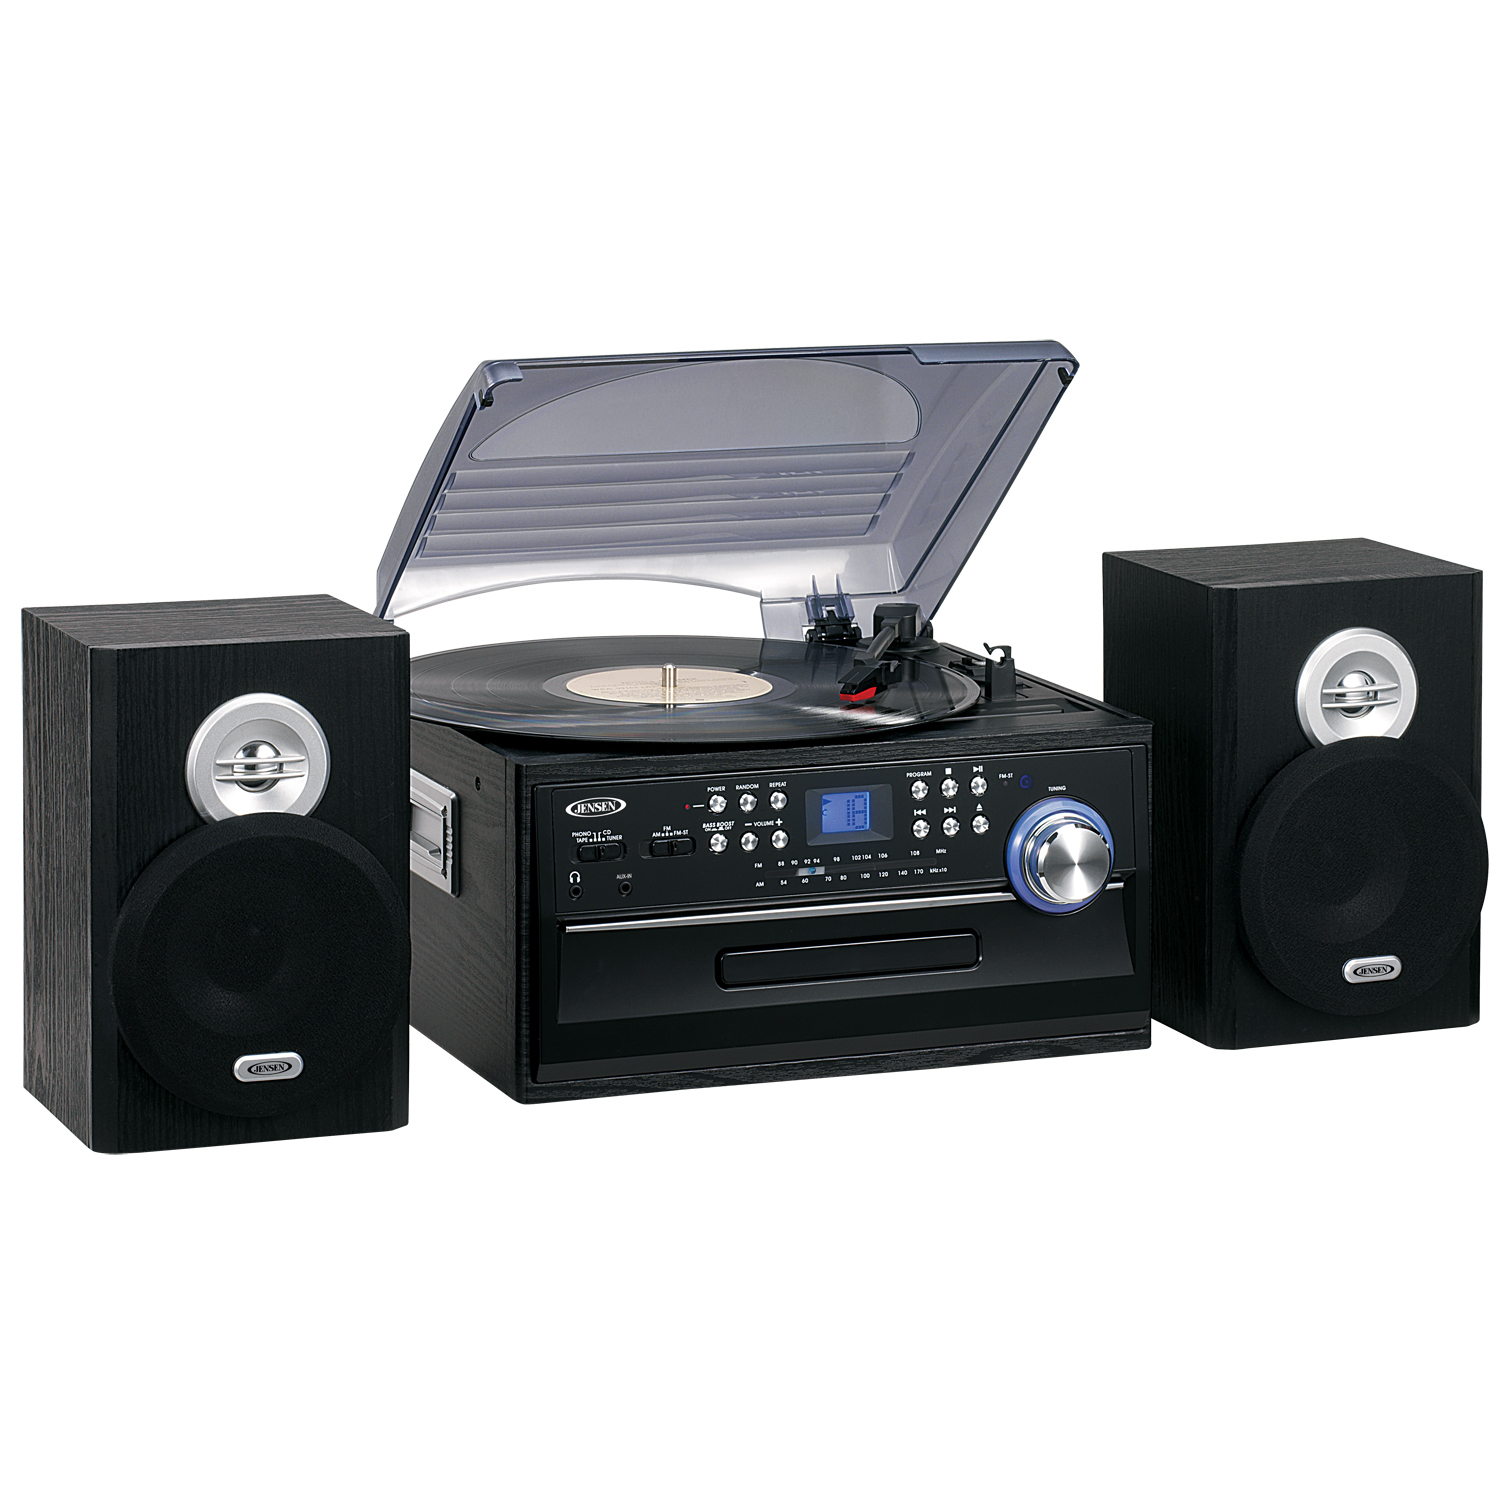 Jensen JTA-475 3-Speed Turntable with CD, Cassette and AM/FM Stereo Radio